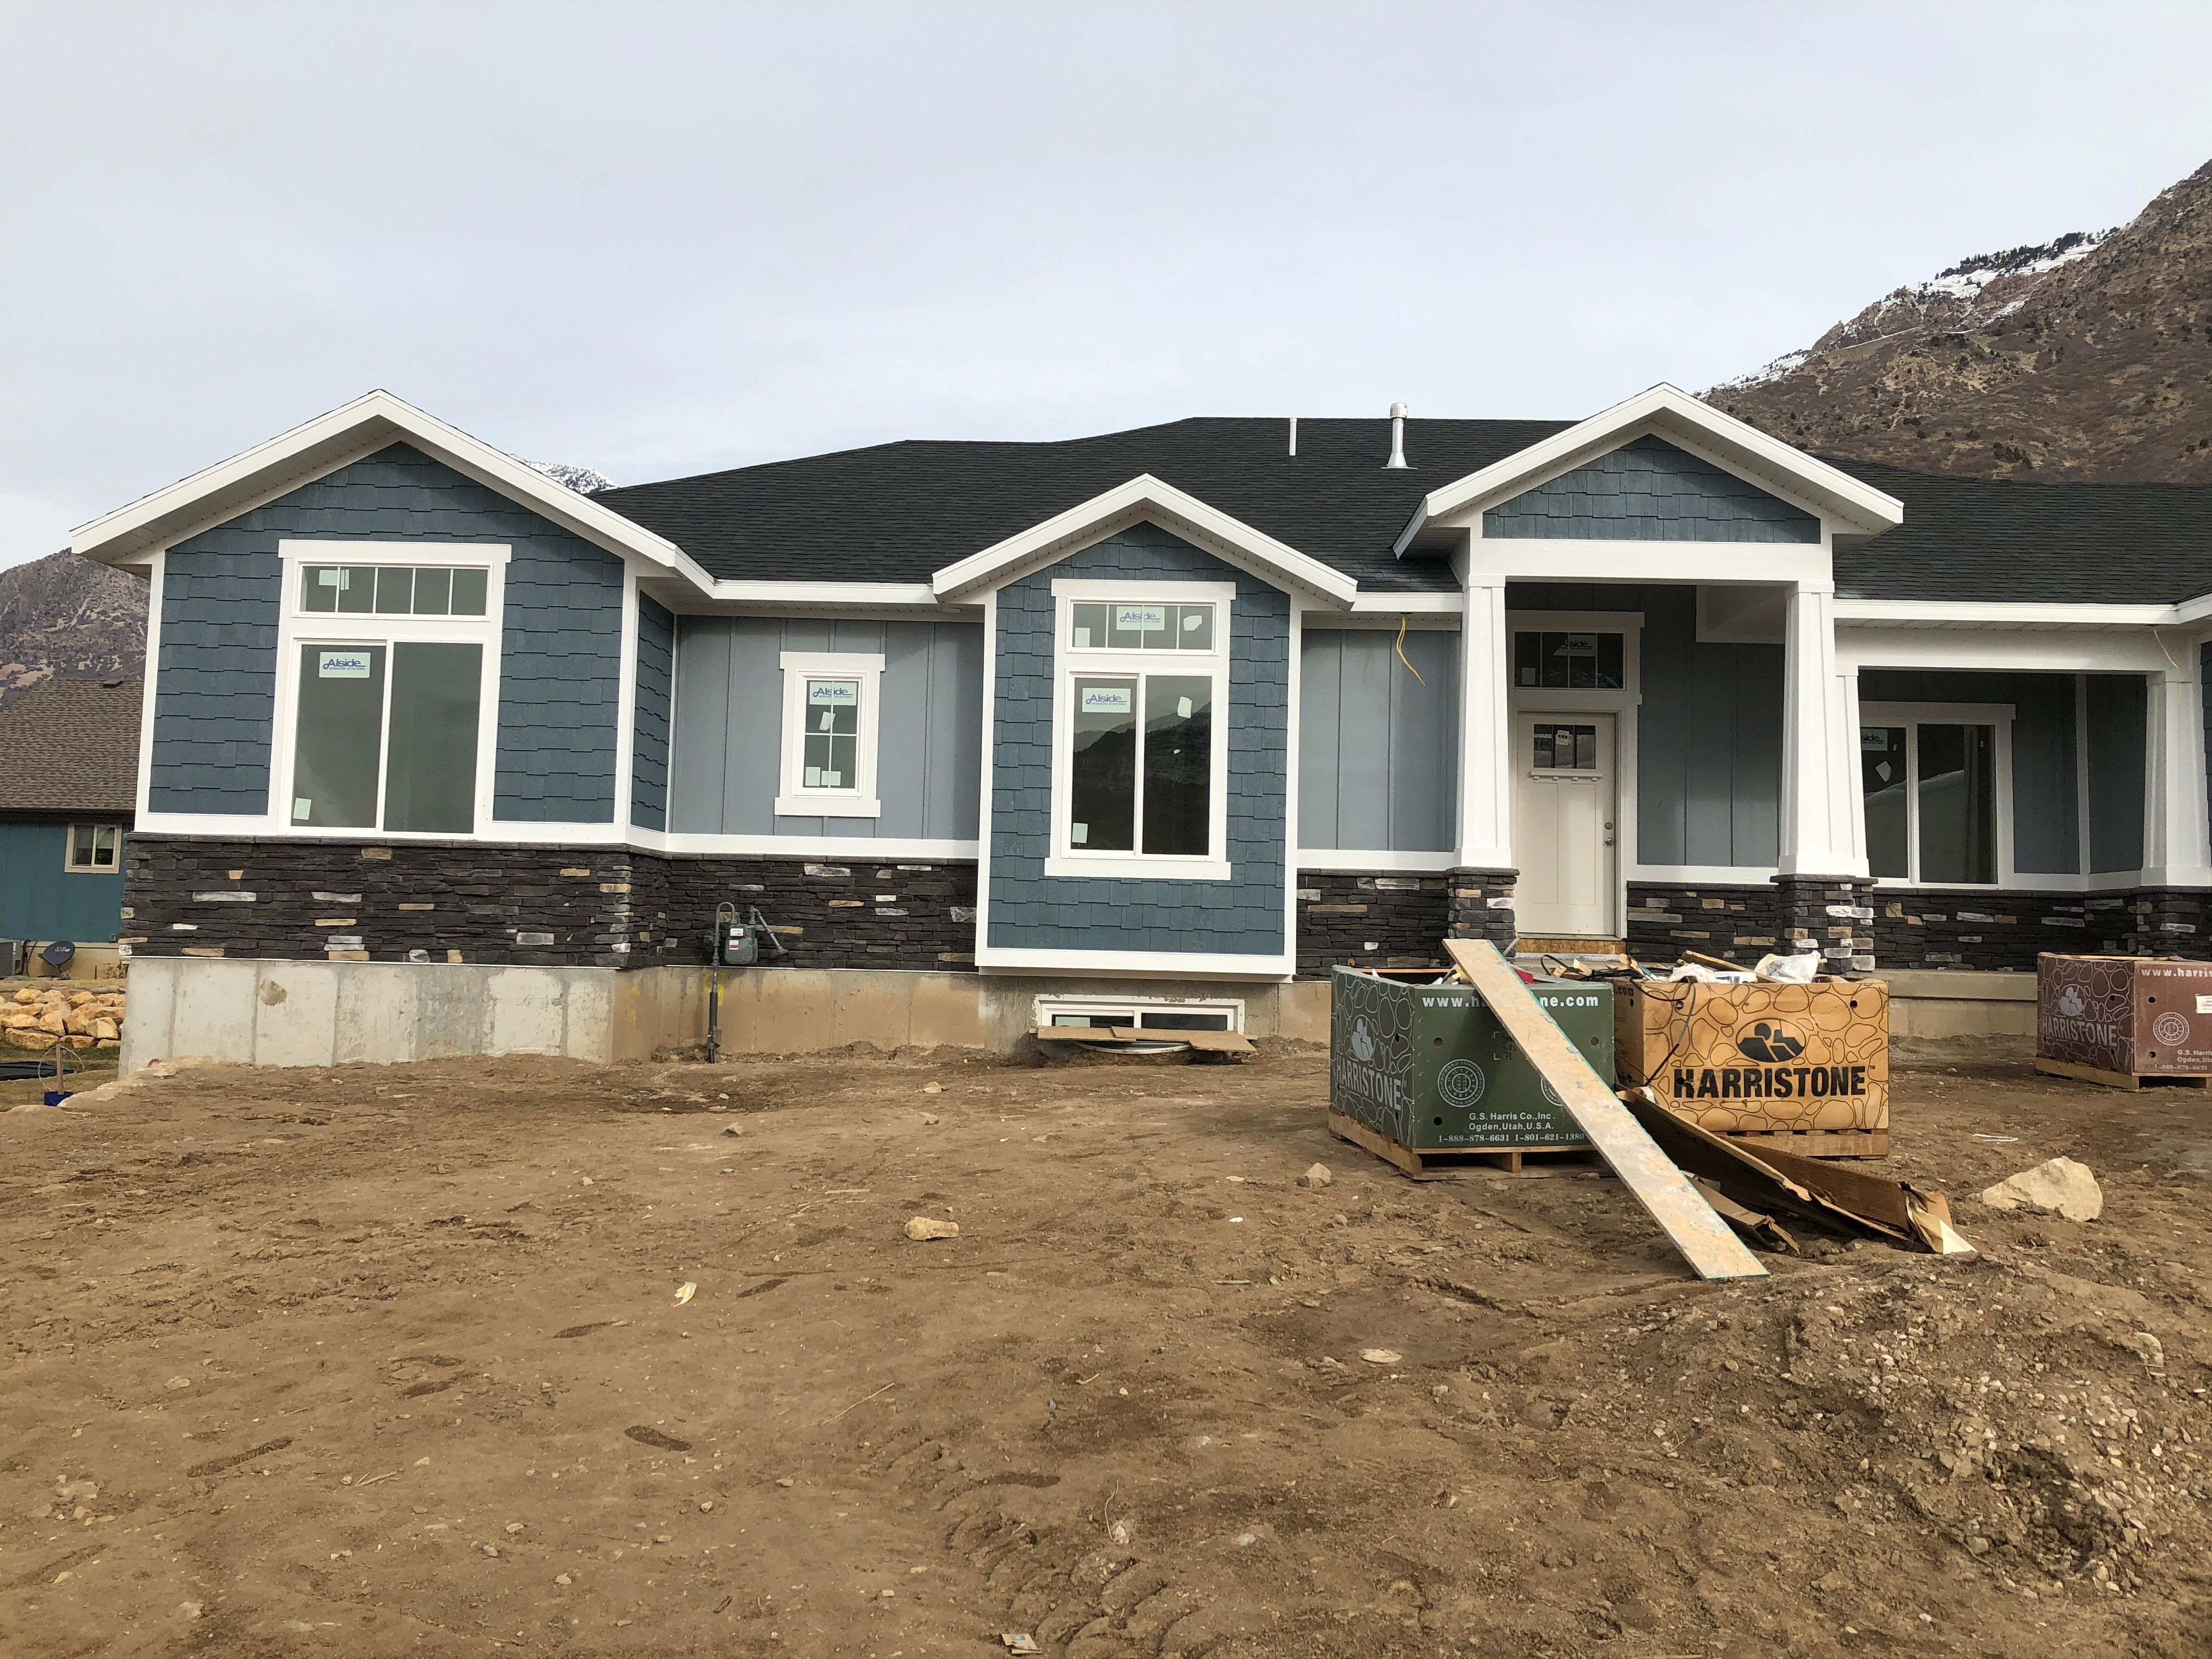 Exterior Sherwin Williams Steely Grey Siding Sherwin Williams Slate Tile Shakes Harristone Canmore Whit Exterior Brick Exterior House Colors House Exterior